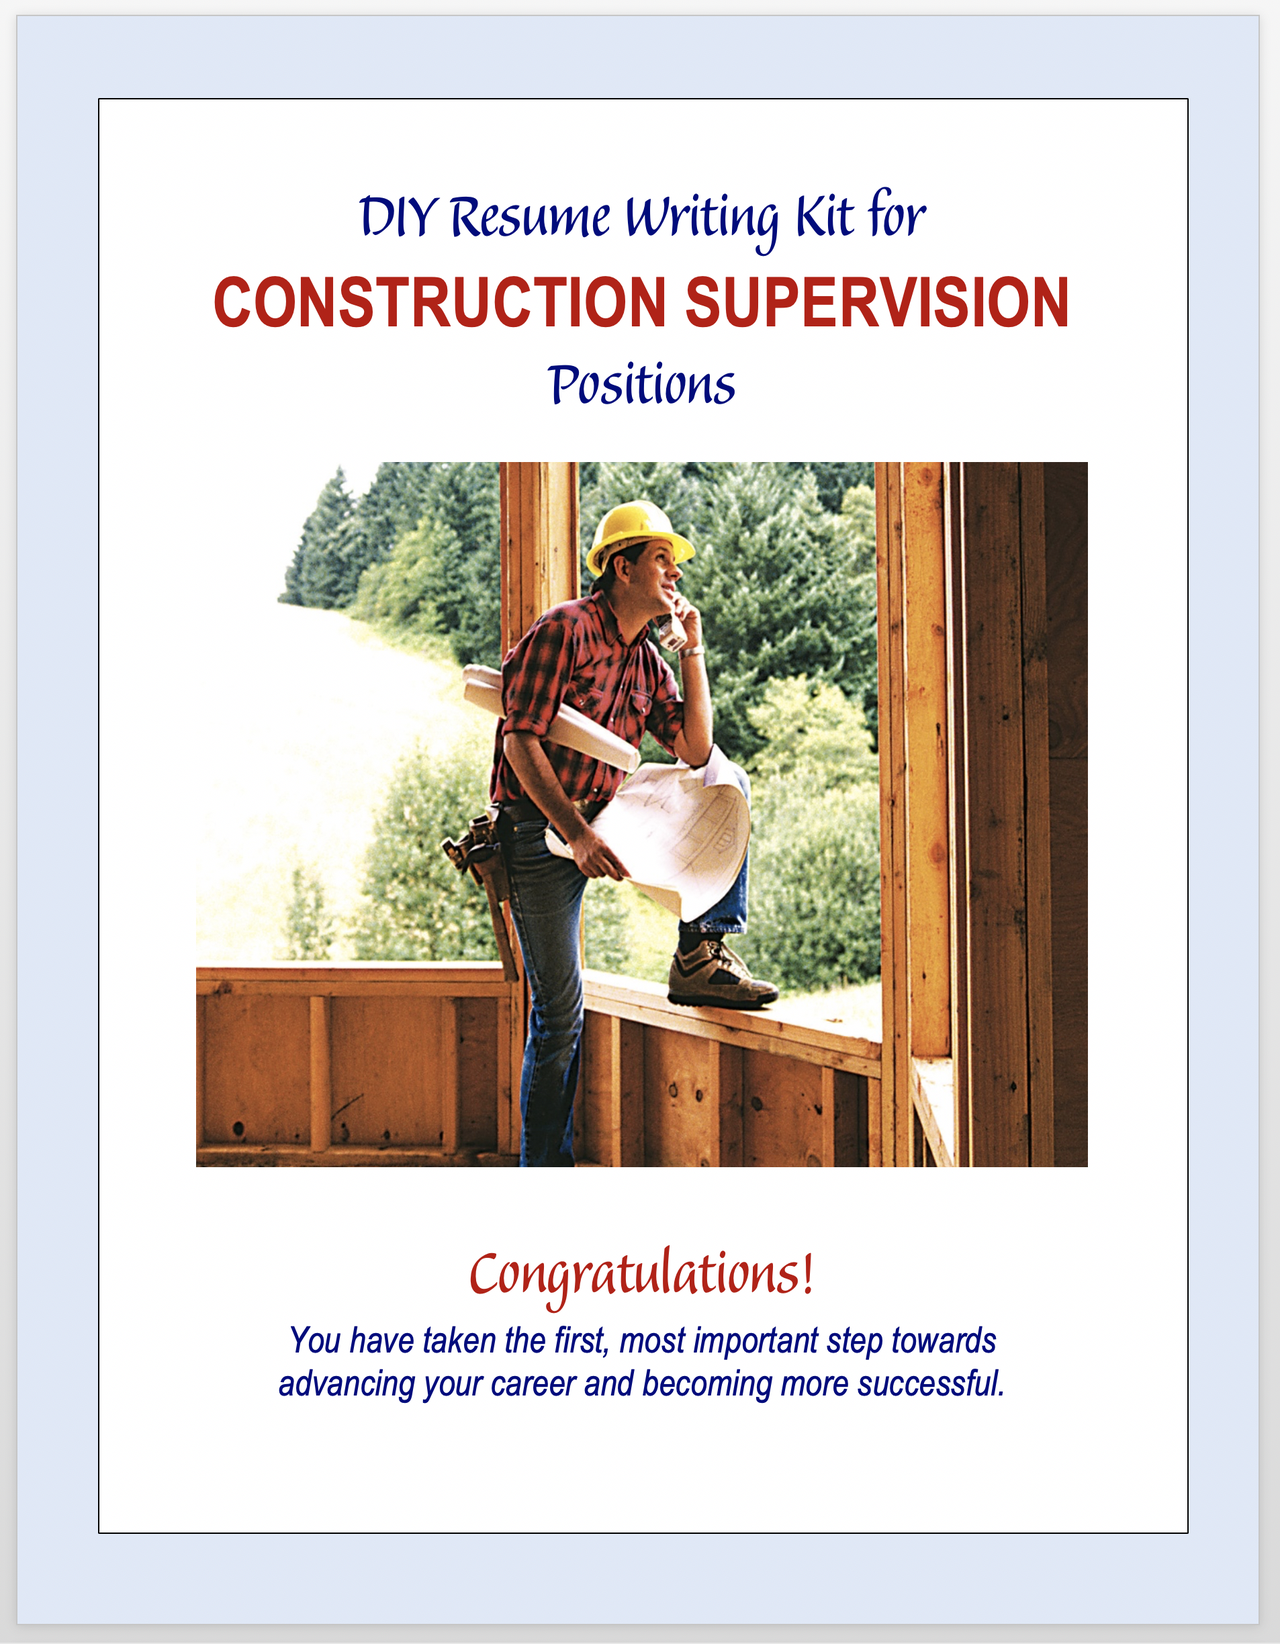 construction supervision.png